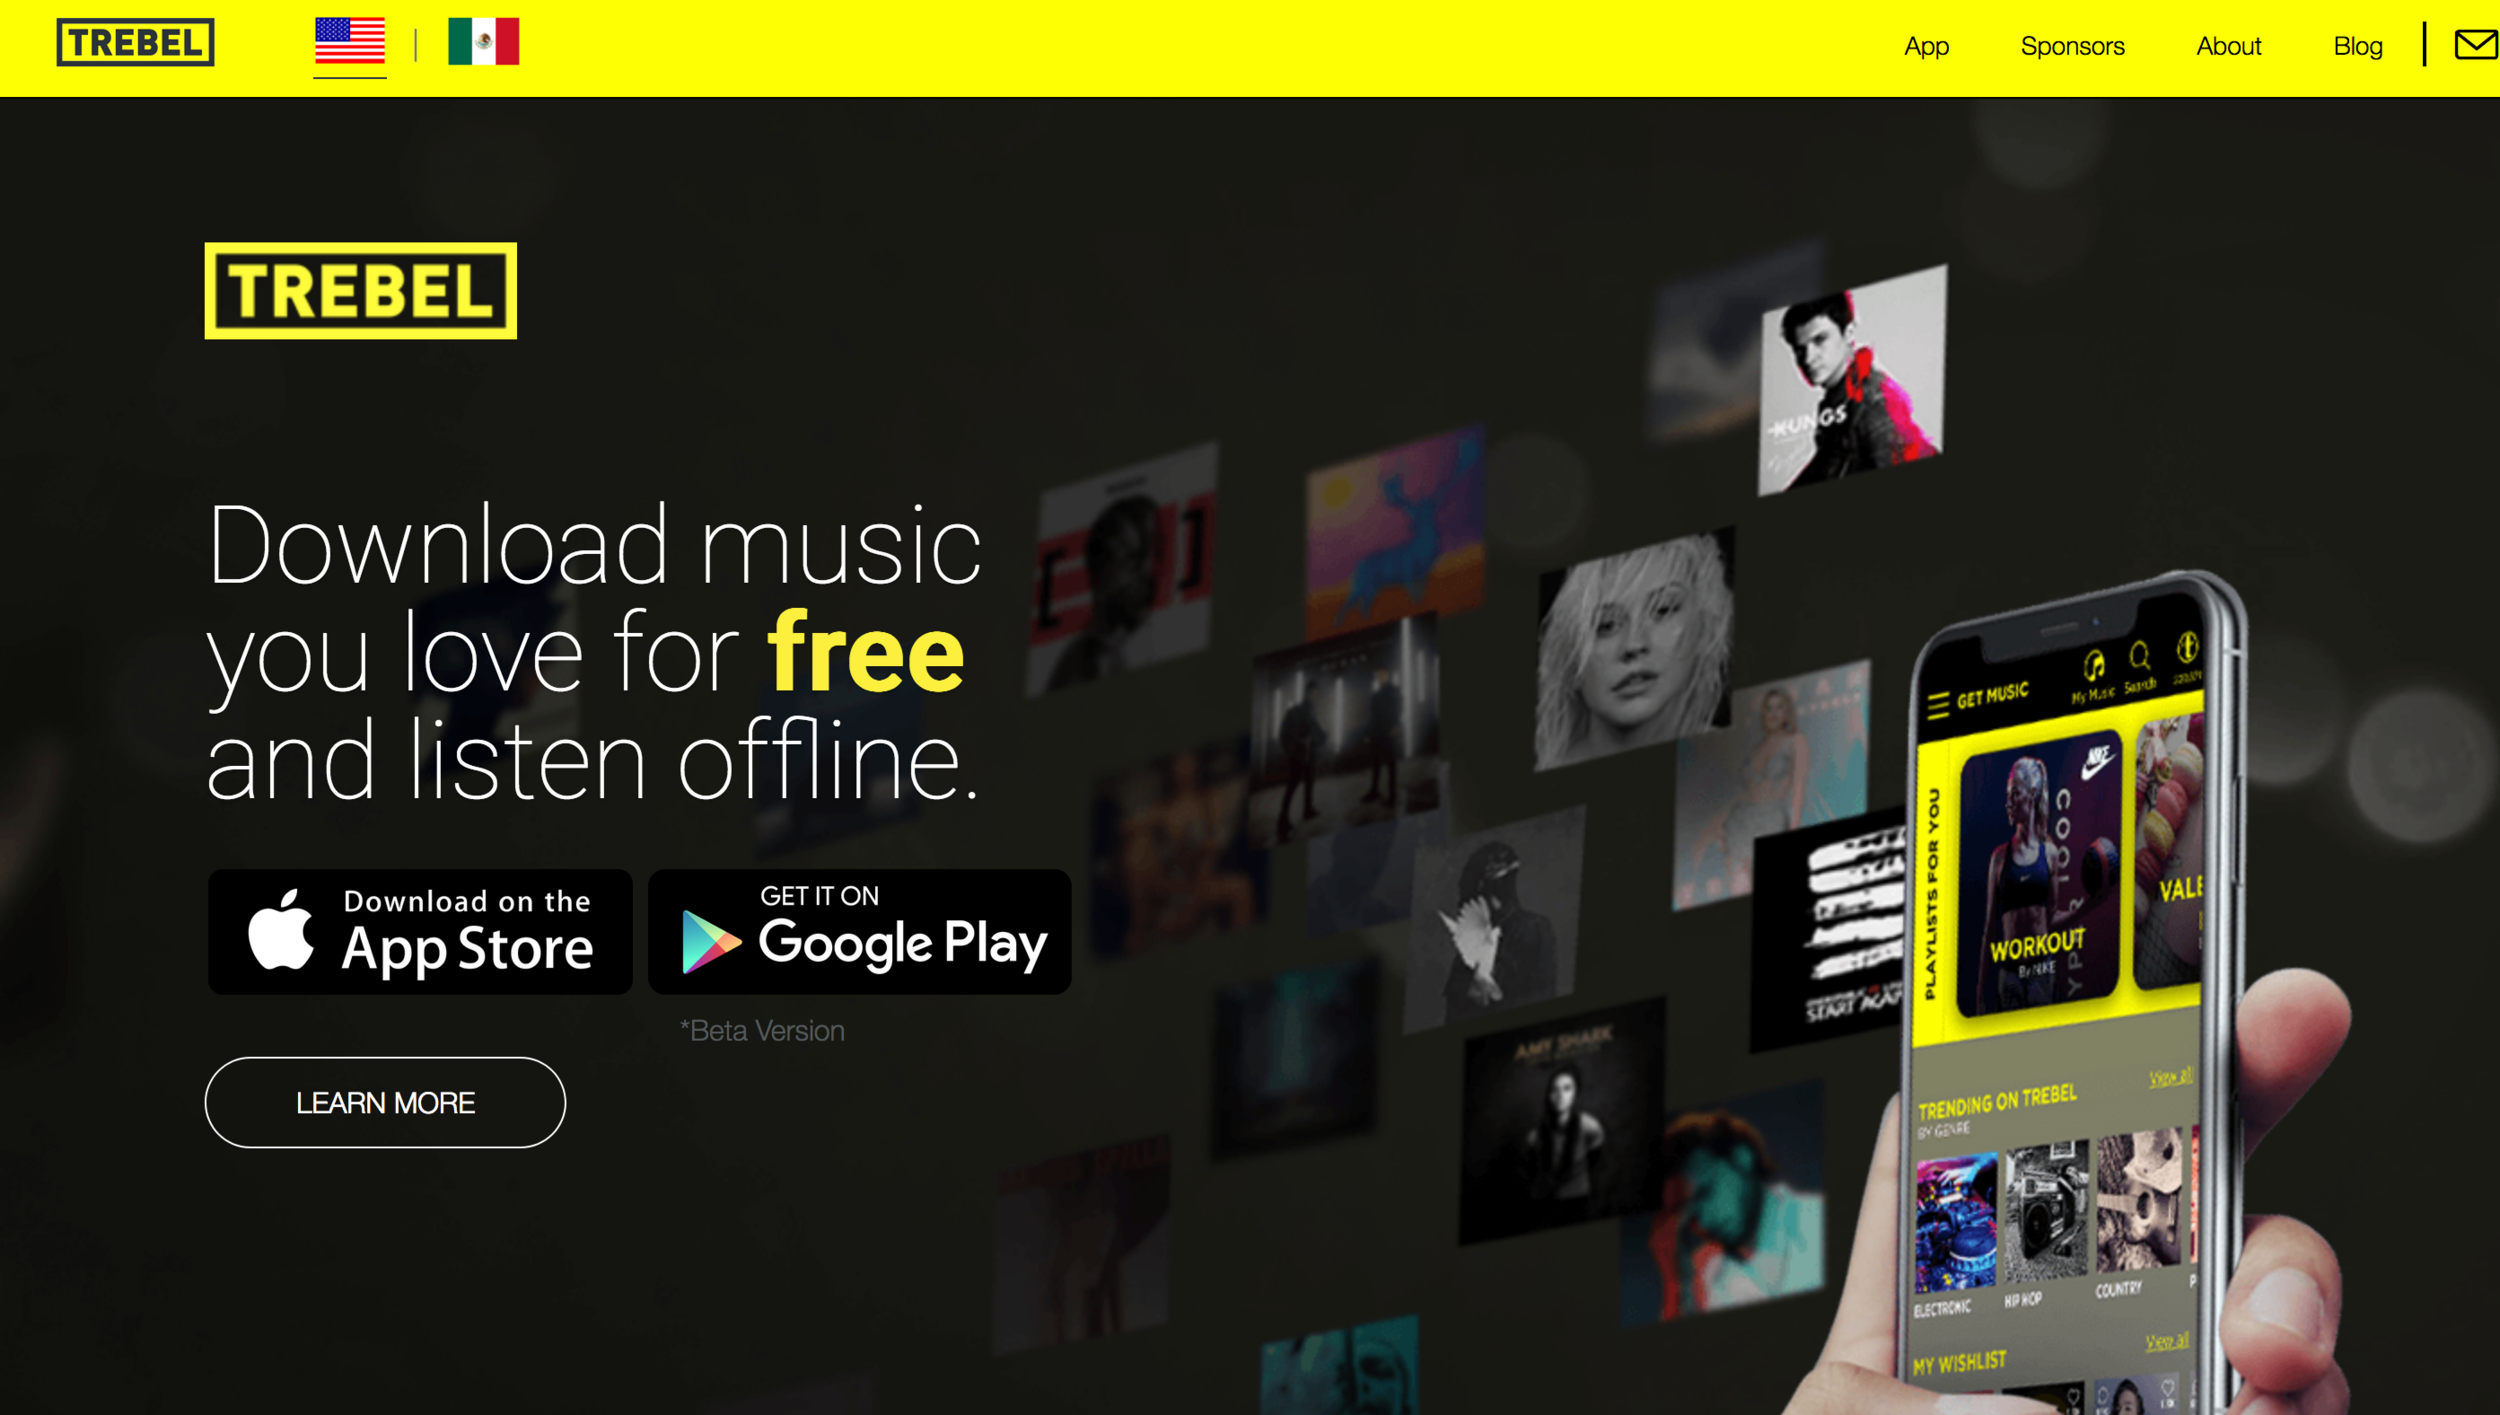 app for android to download music for free